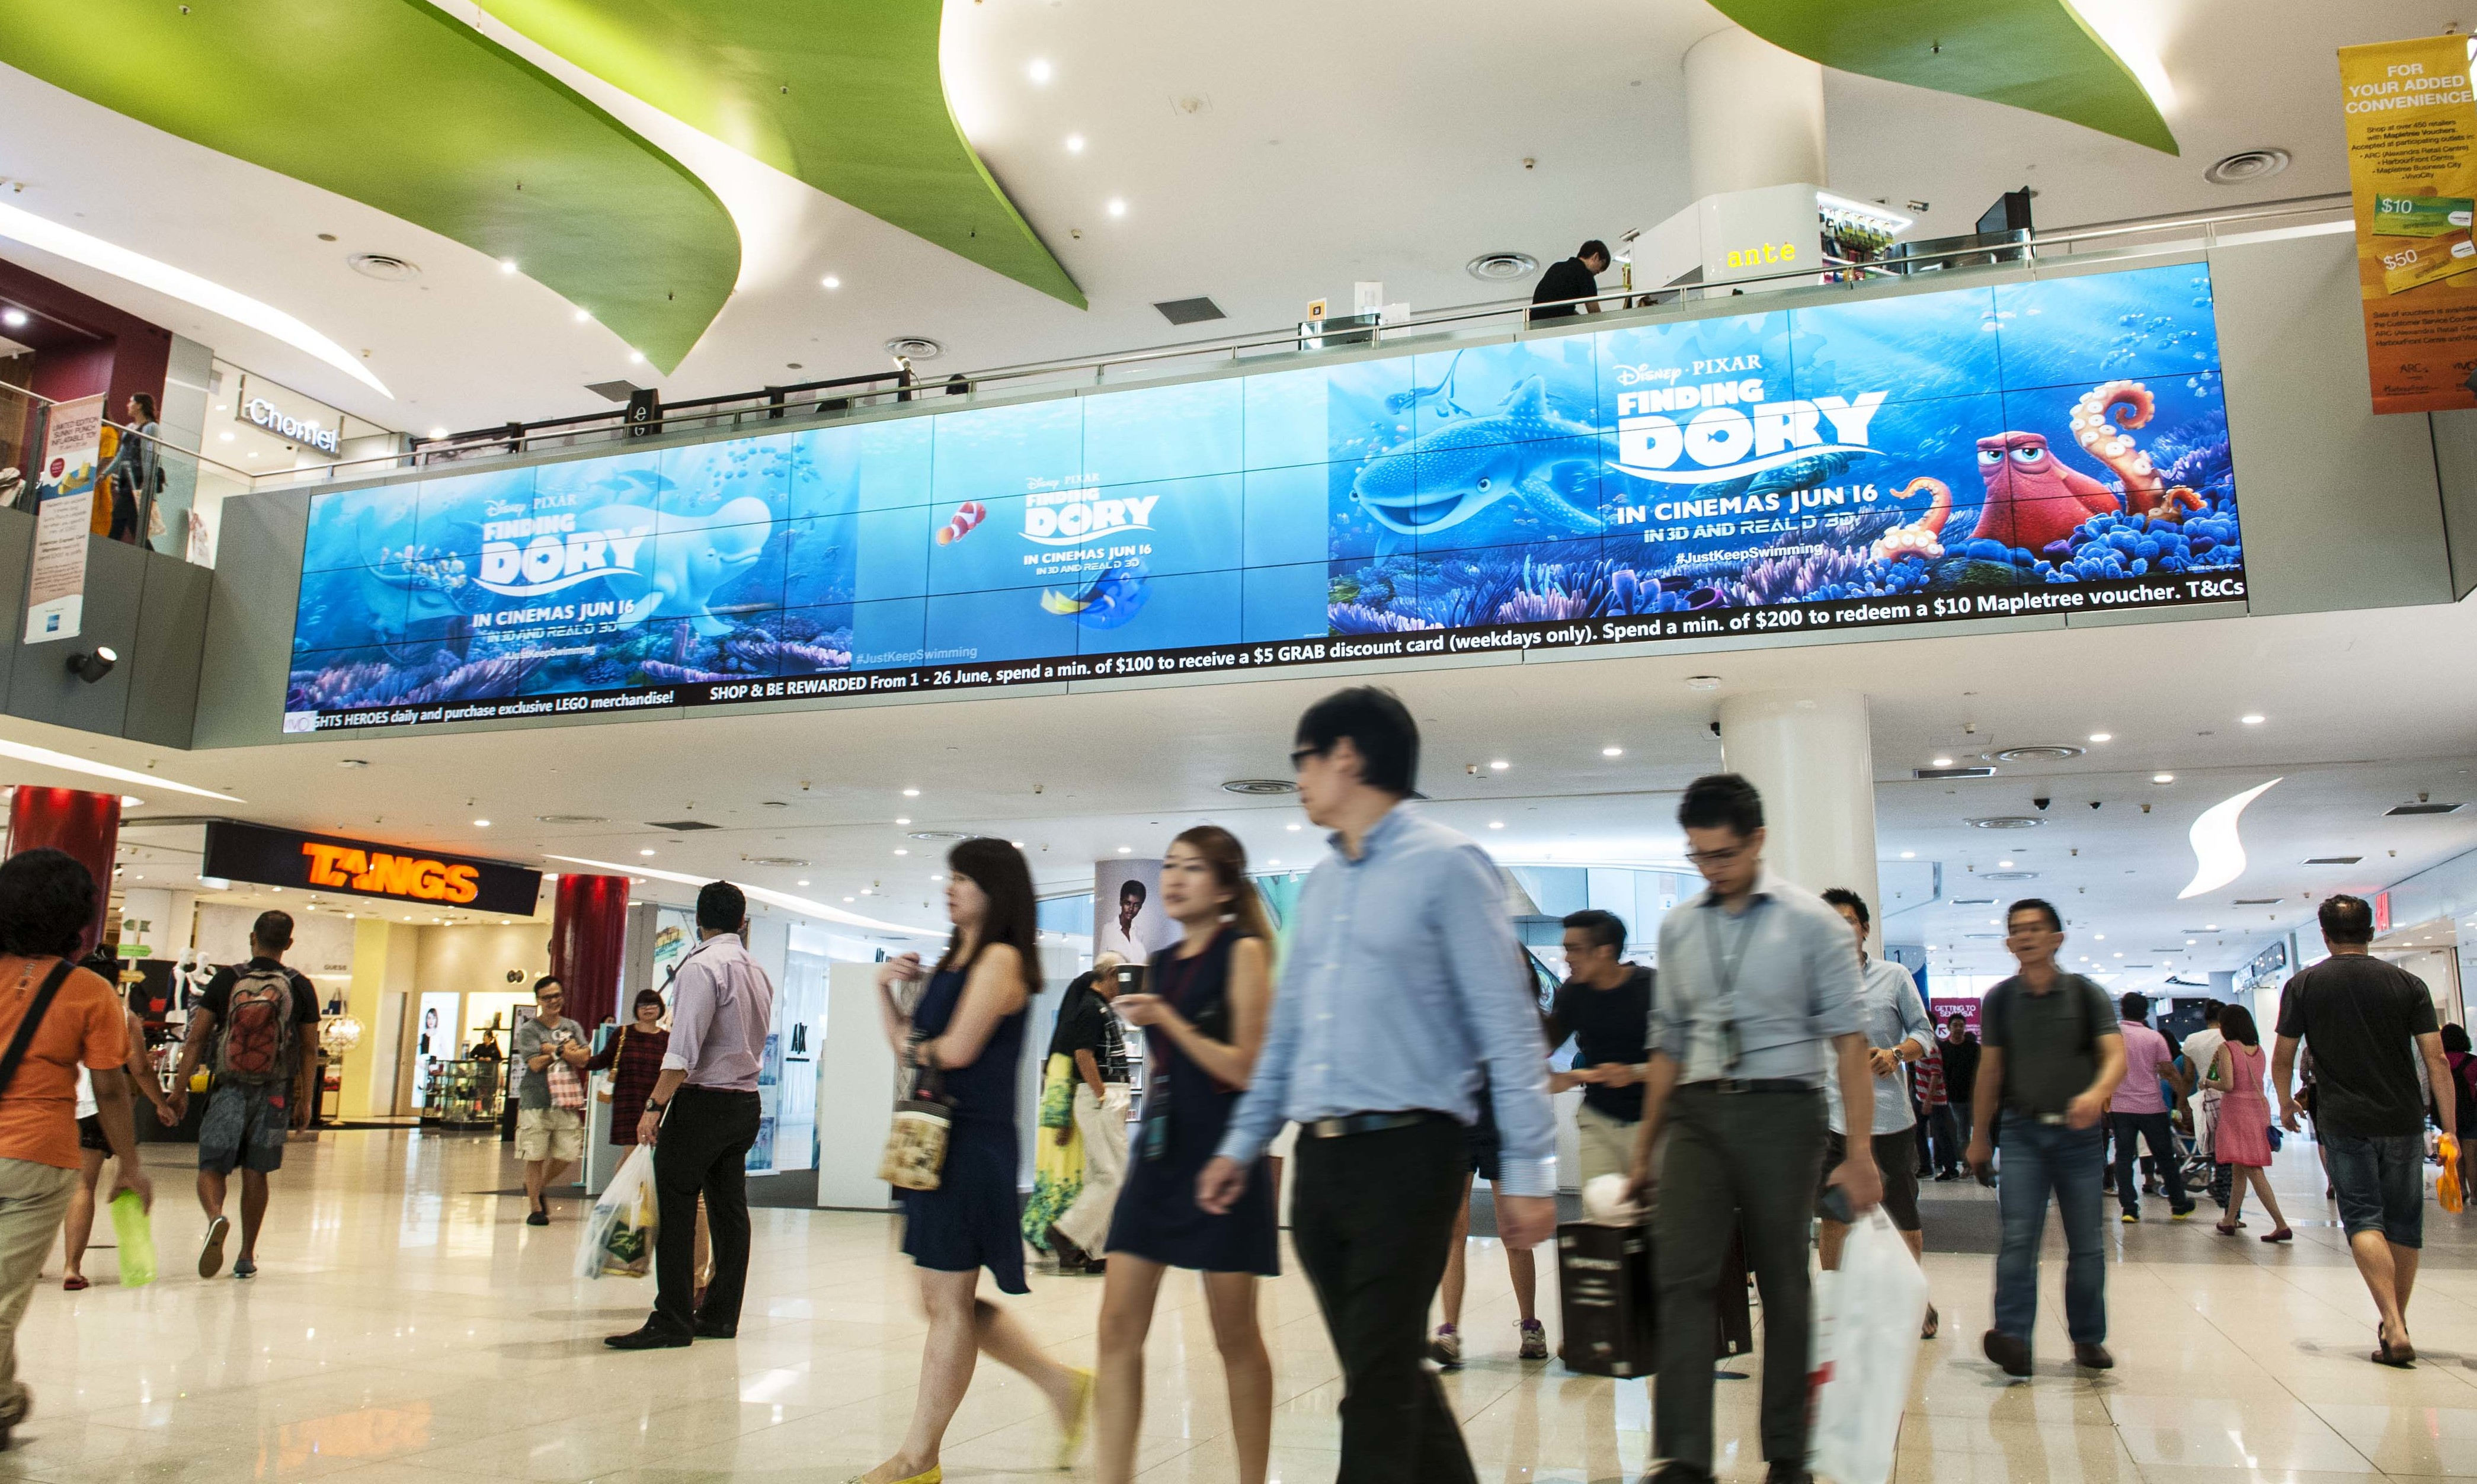 Sphmbo Shows Off Latest Ooh Offering In Vivocity